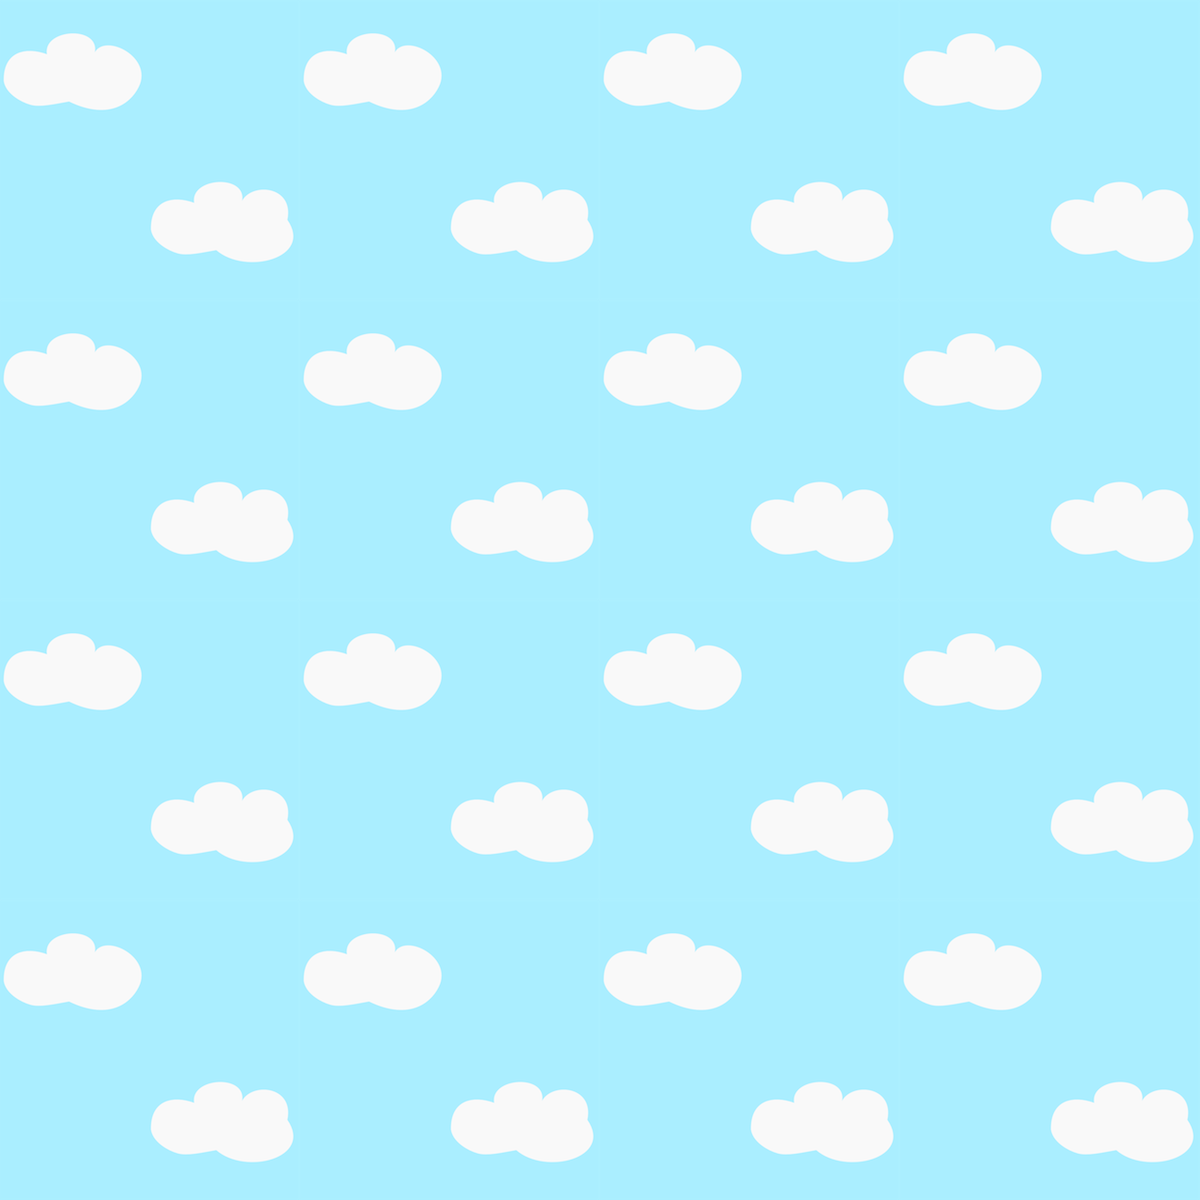 Scrapbook paper designs to print - Free Printable Fluffy Clouds Pattern Paper